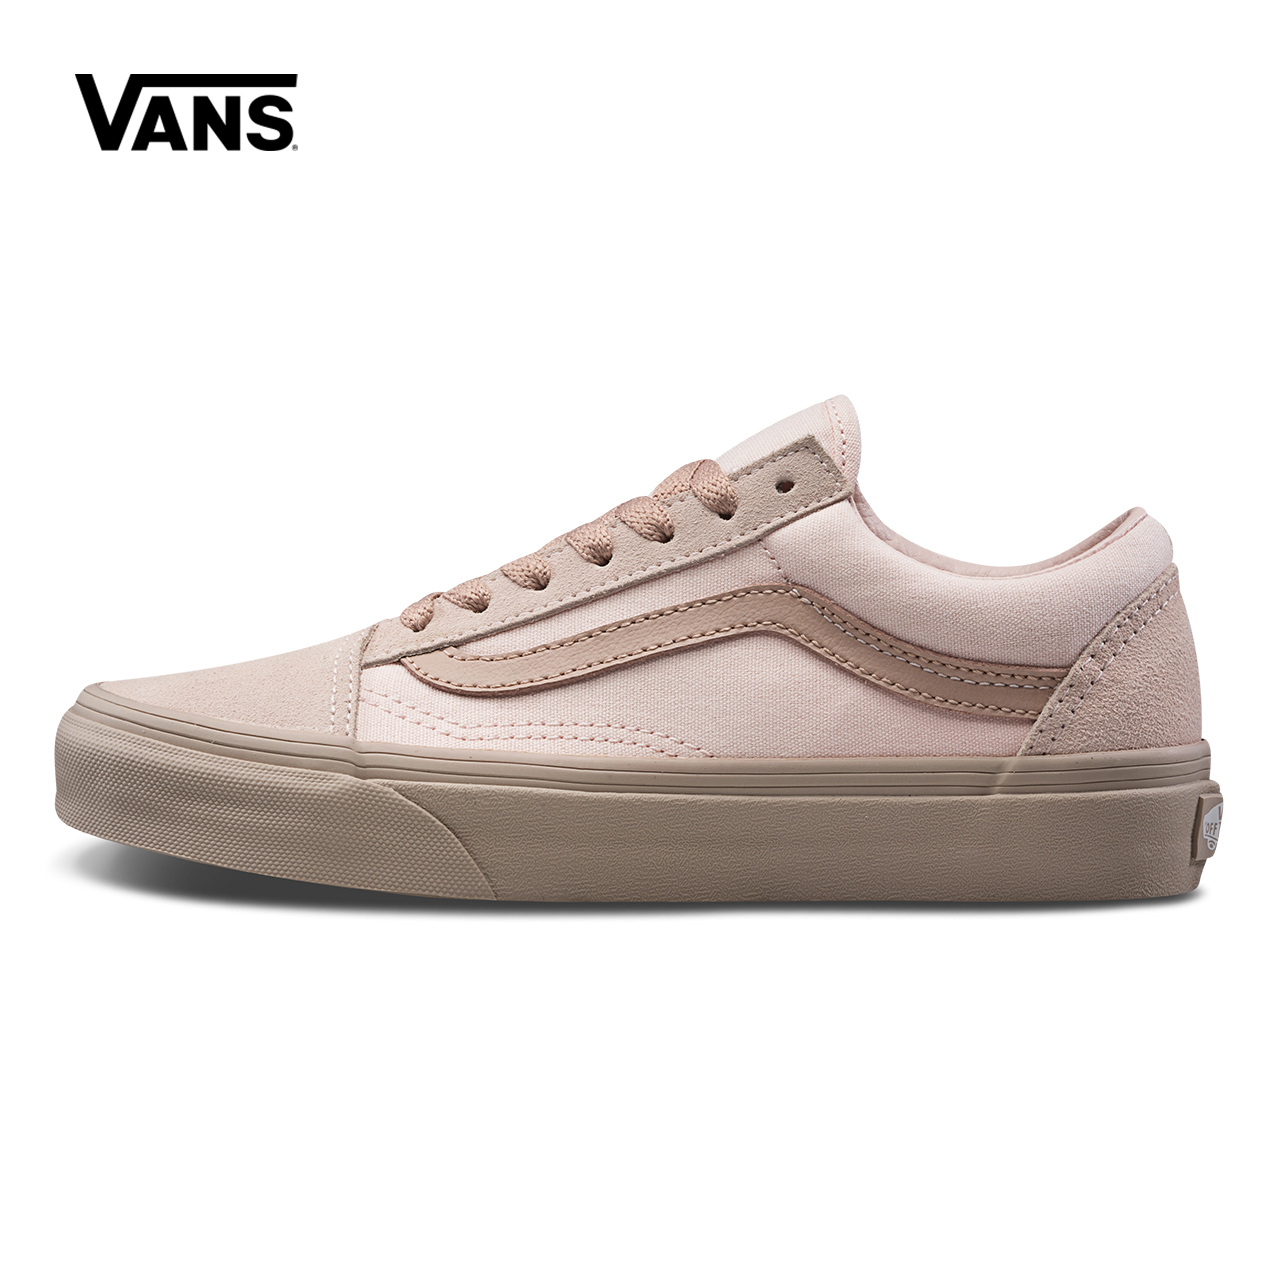 Original Vans Autumn New Old Skool Small Fresh Women Shoes Low Help Skateboarding Shoes Sports Canvas Shoes Sneakers VN0A38G1QVM